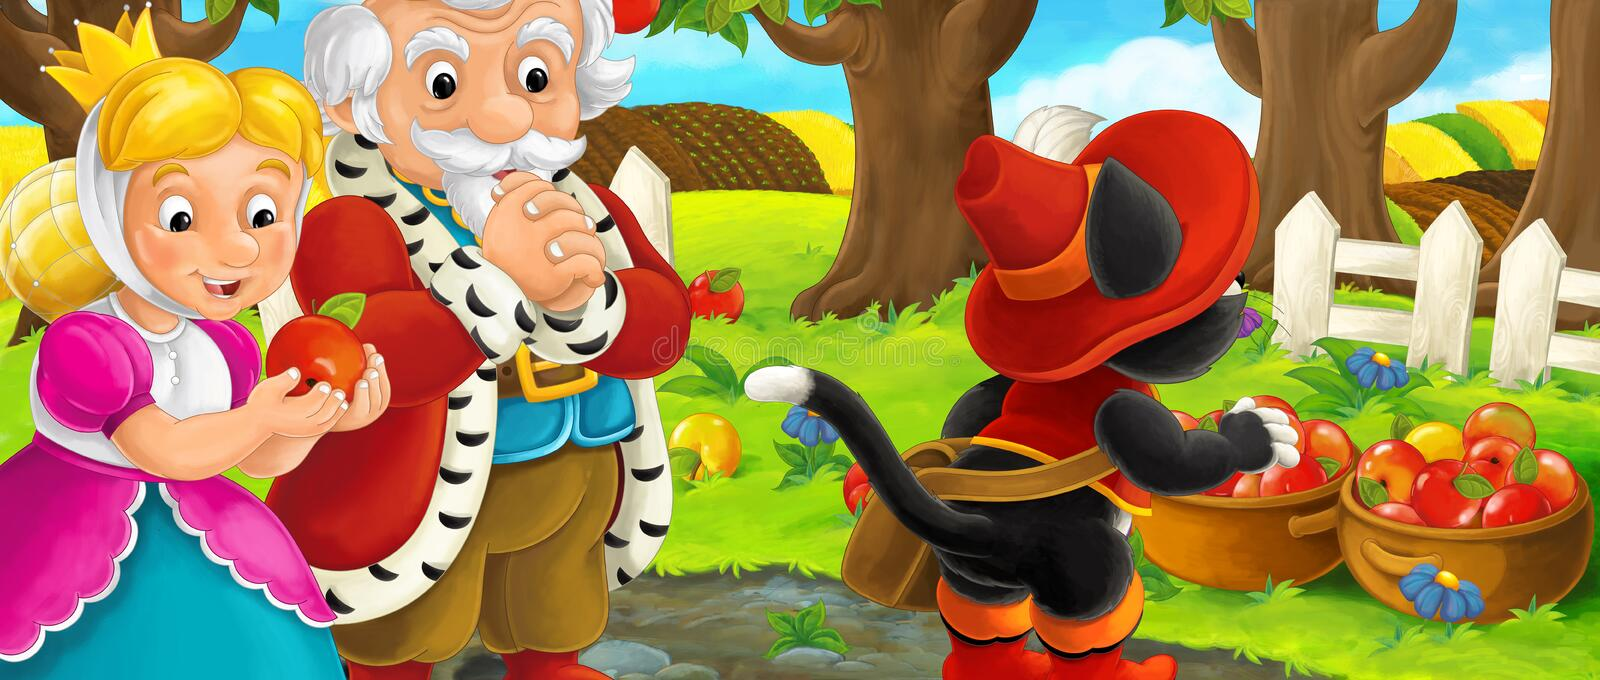 Cartoon scene with royal pair and cat traveler visiting apple garden during beautiful day stock illustration